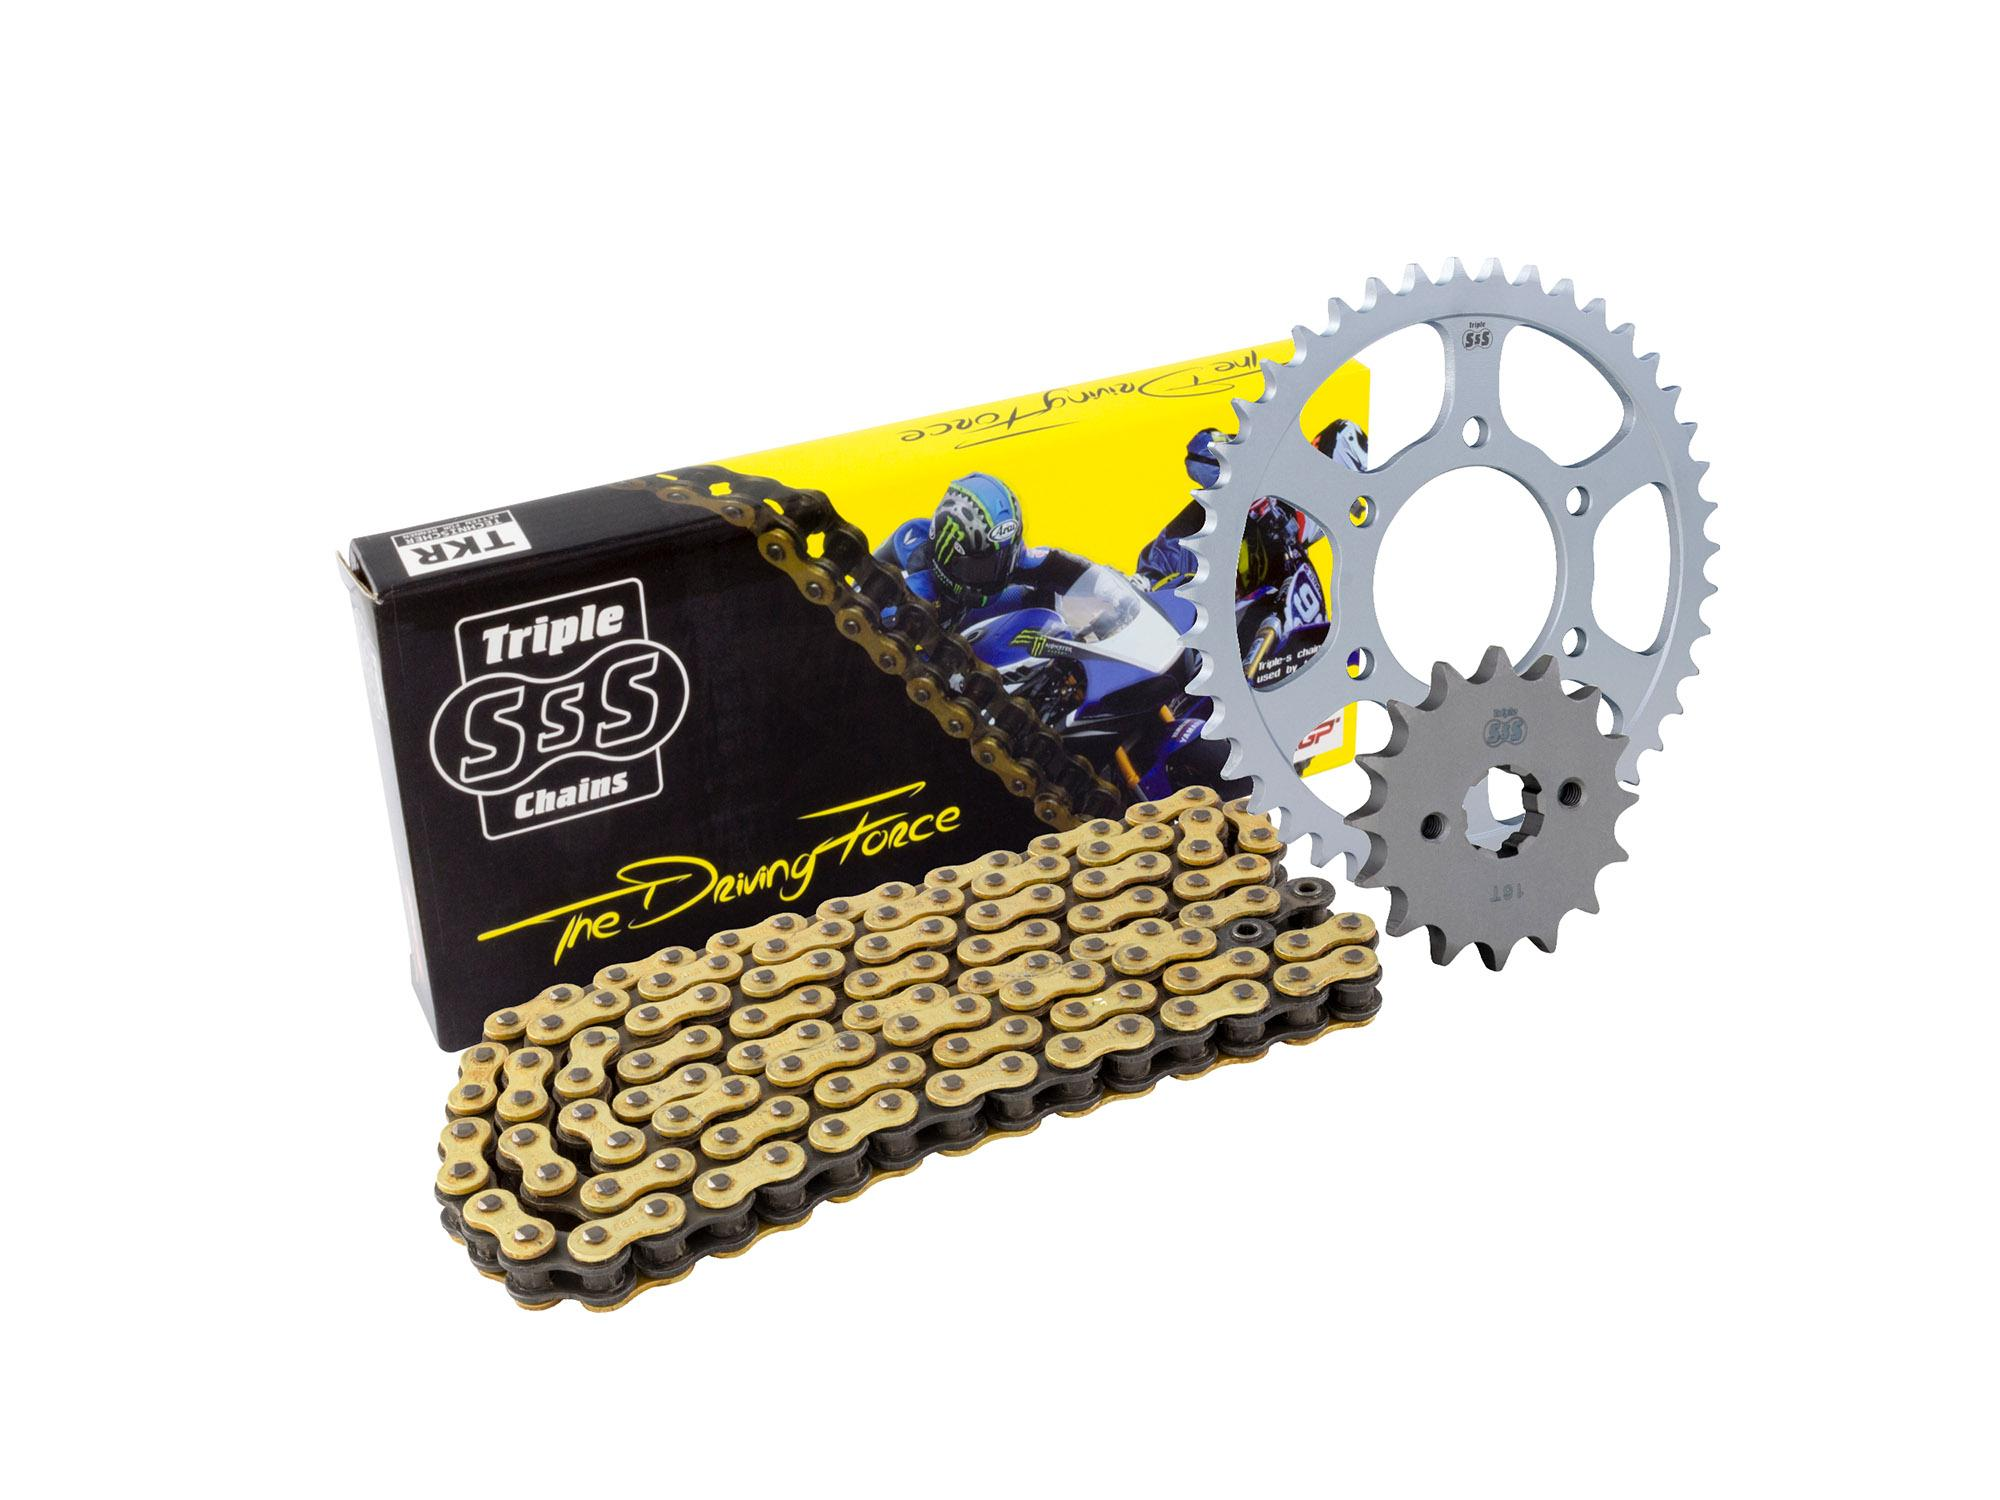 Honda CBR300 14-16 Chain & Sprocket Kit: 14T Front, 36T Rear, HD O-Ring Gold Chain 520H 108Link